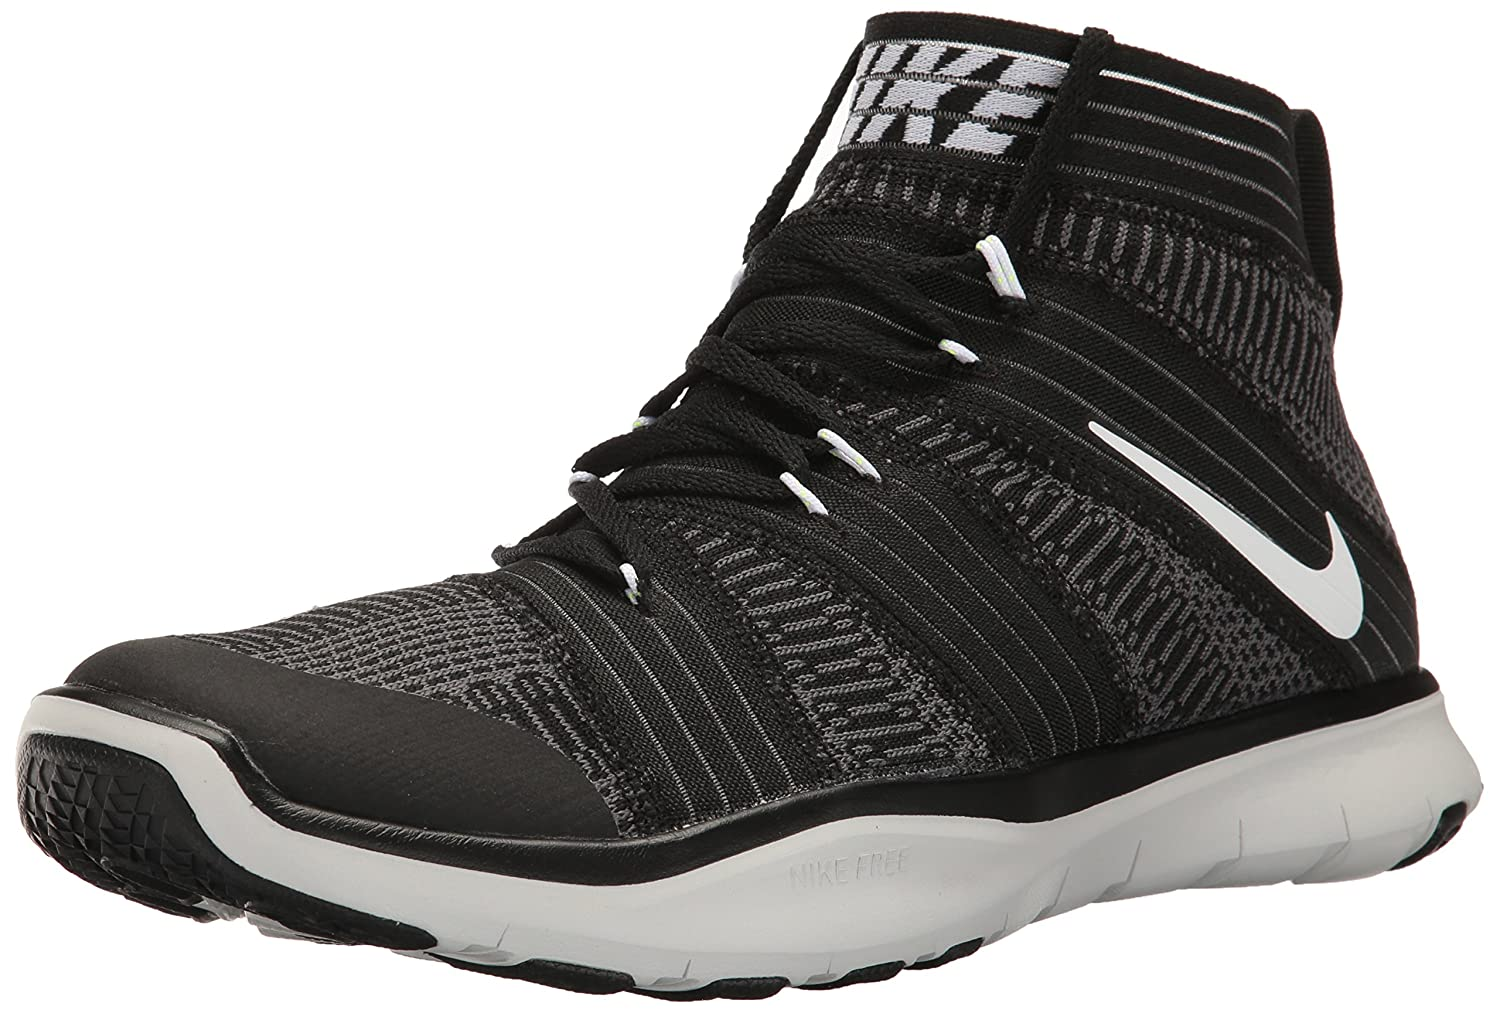 watch 58d42 5a0bd Amazon.com   Nike Mens Virtue Hight Top Lace Up Running Sneaker   Athletic